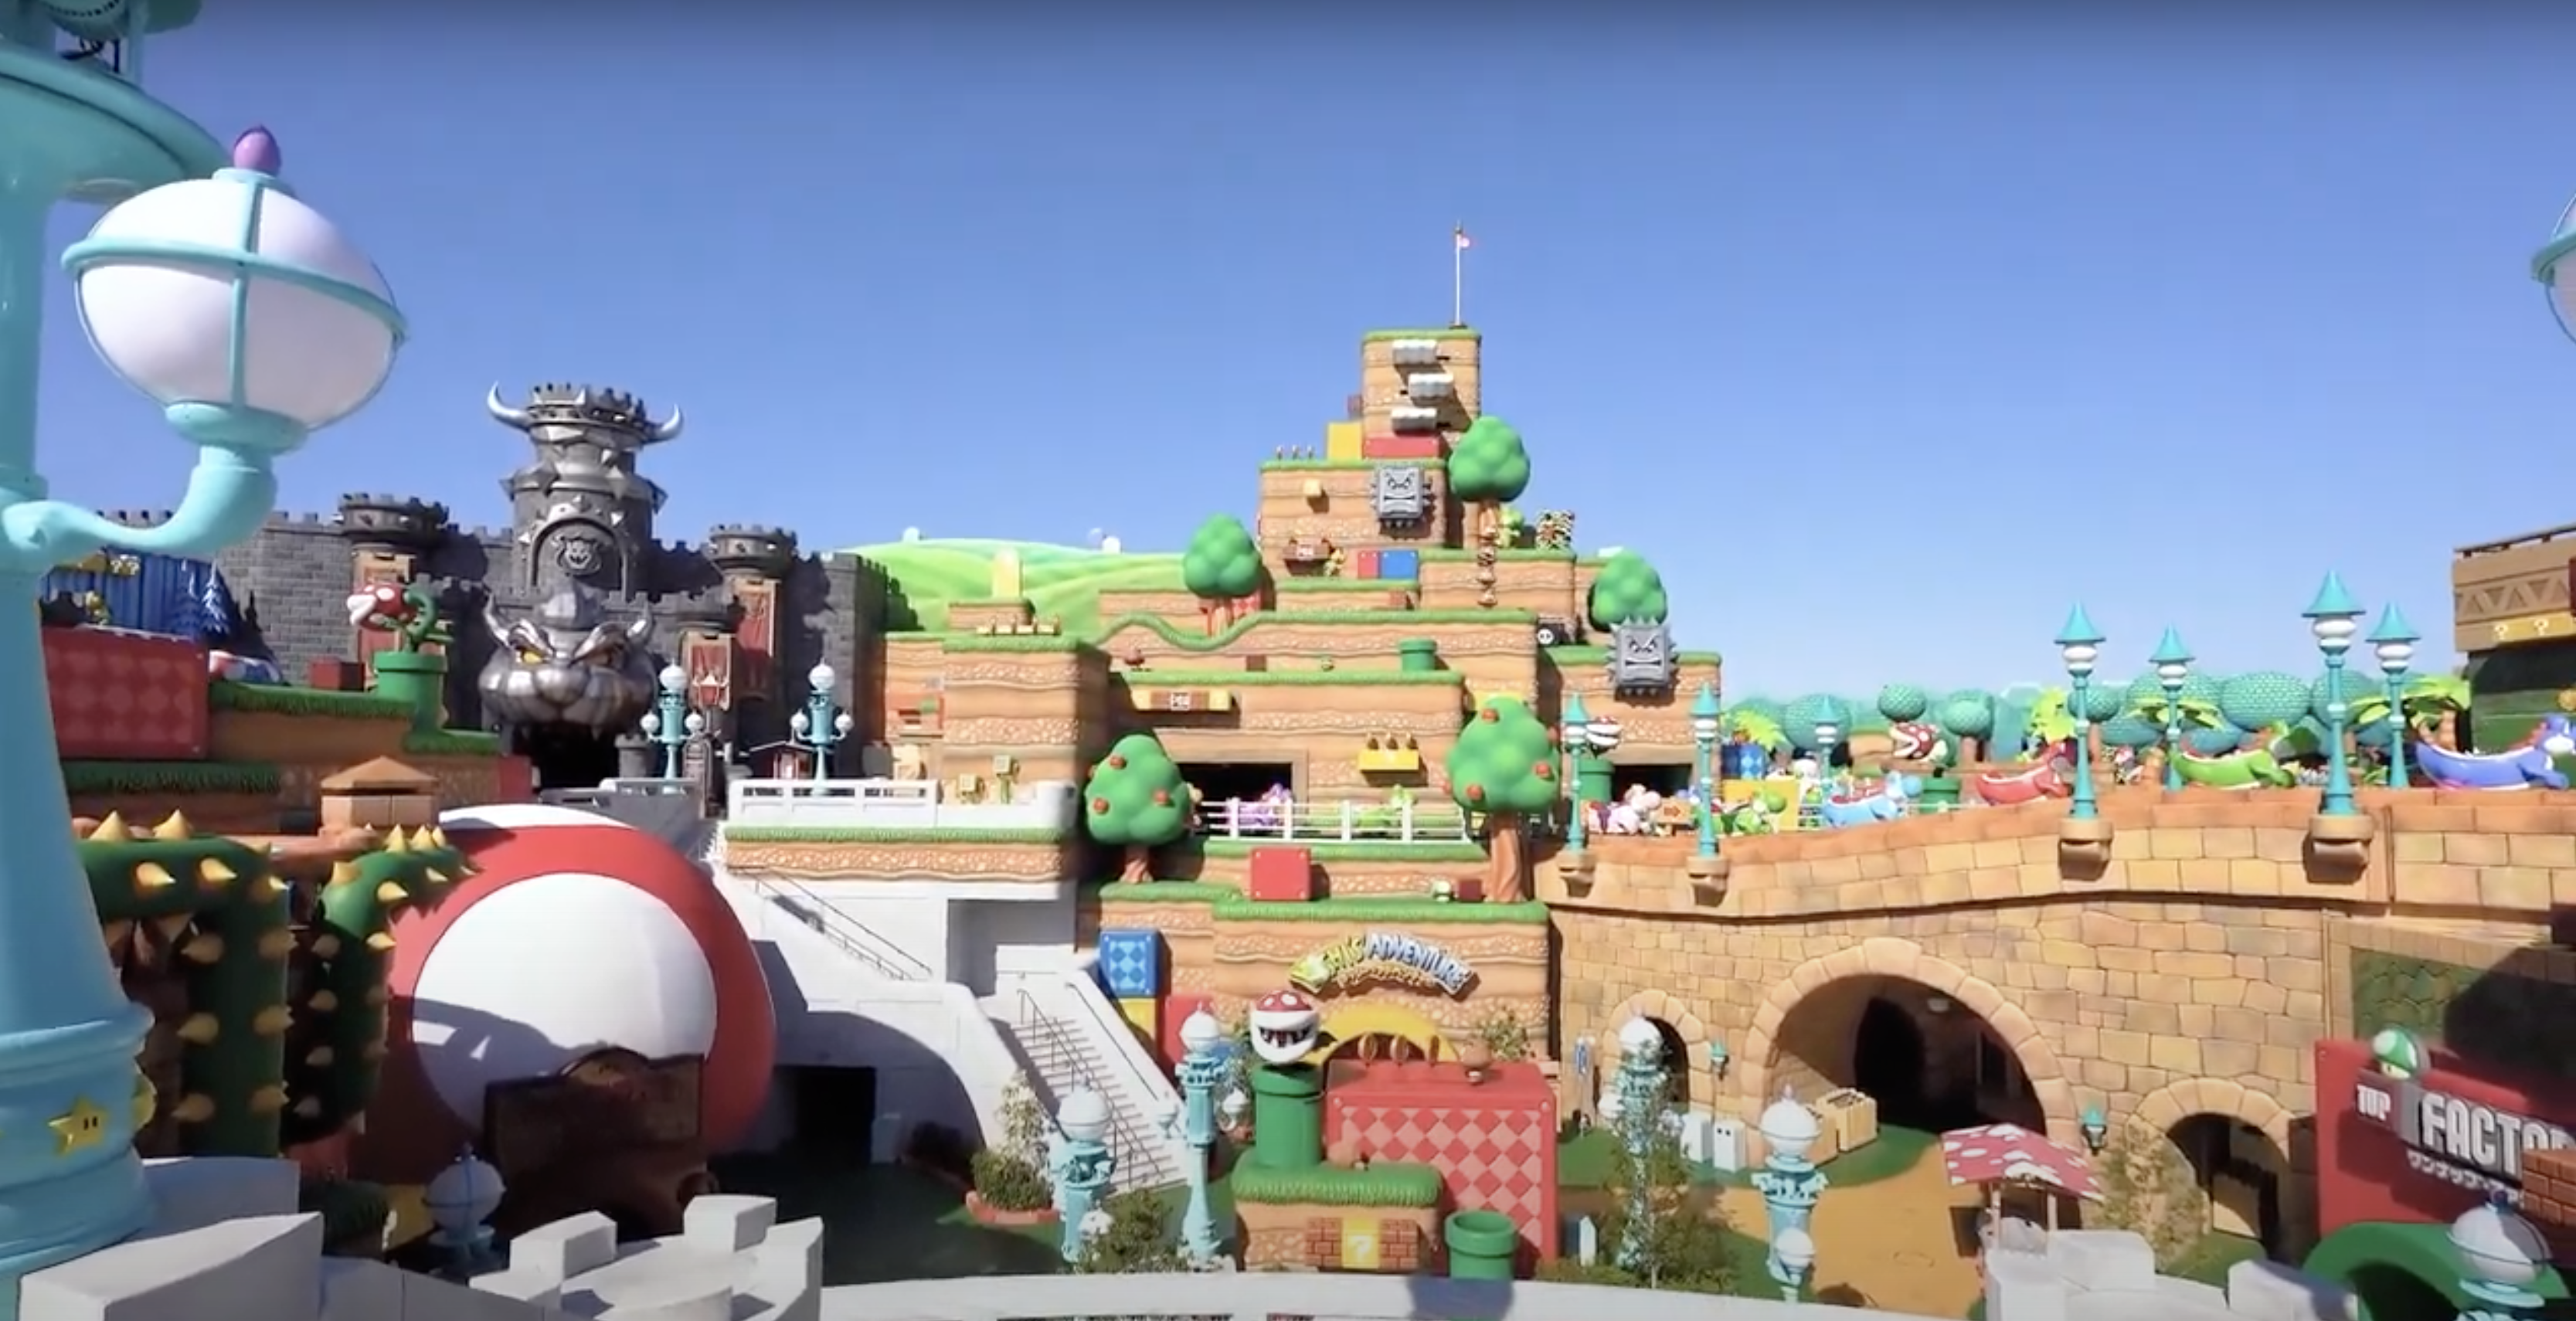 What Attractions Would You Like to See in a Zelda-Themed Add-On to or Version of Super Nintendo World?